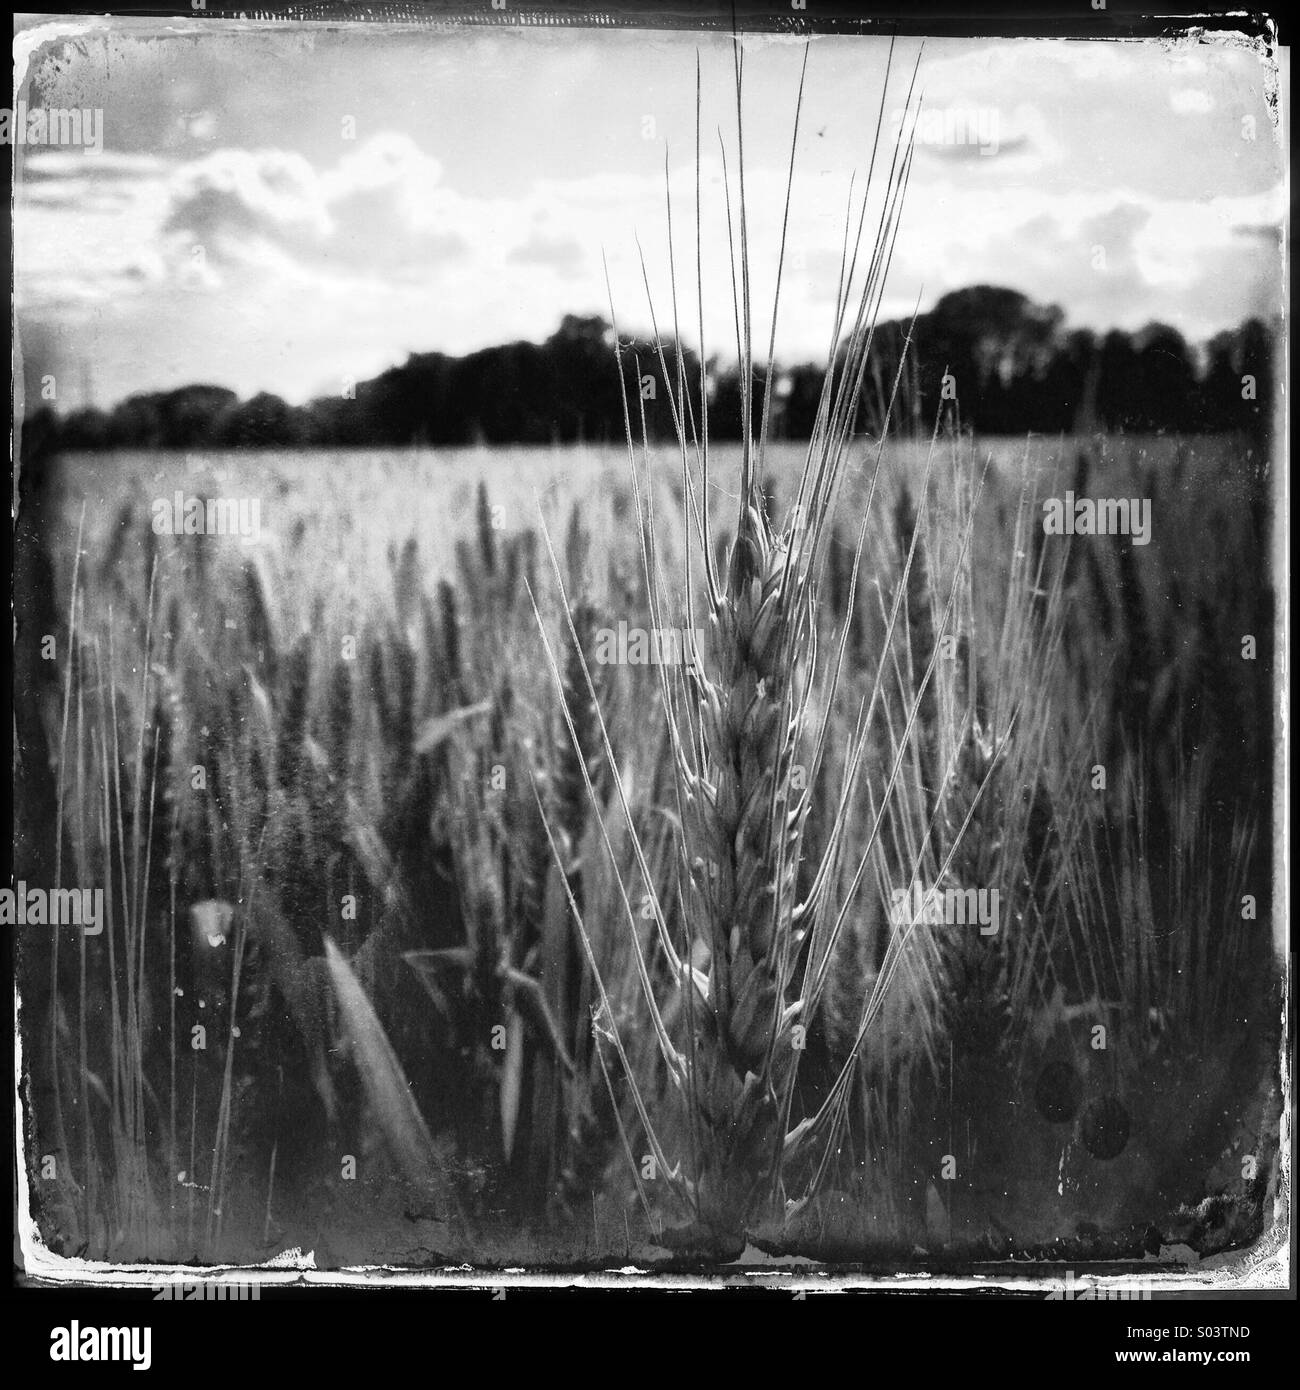 Wheat field in the Umbrian countryside near Perugia - Stock Image